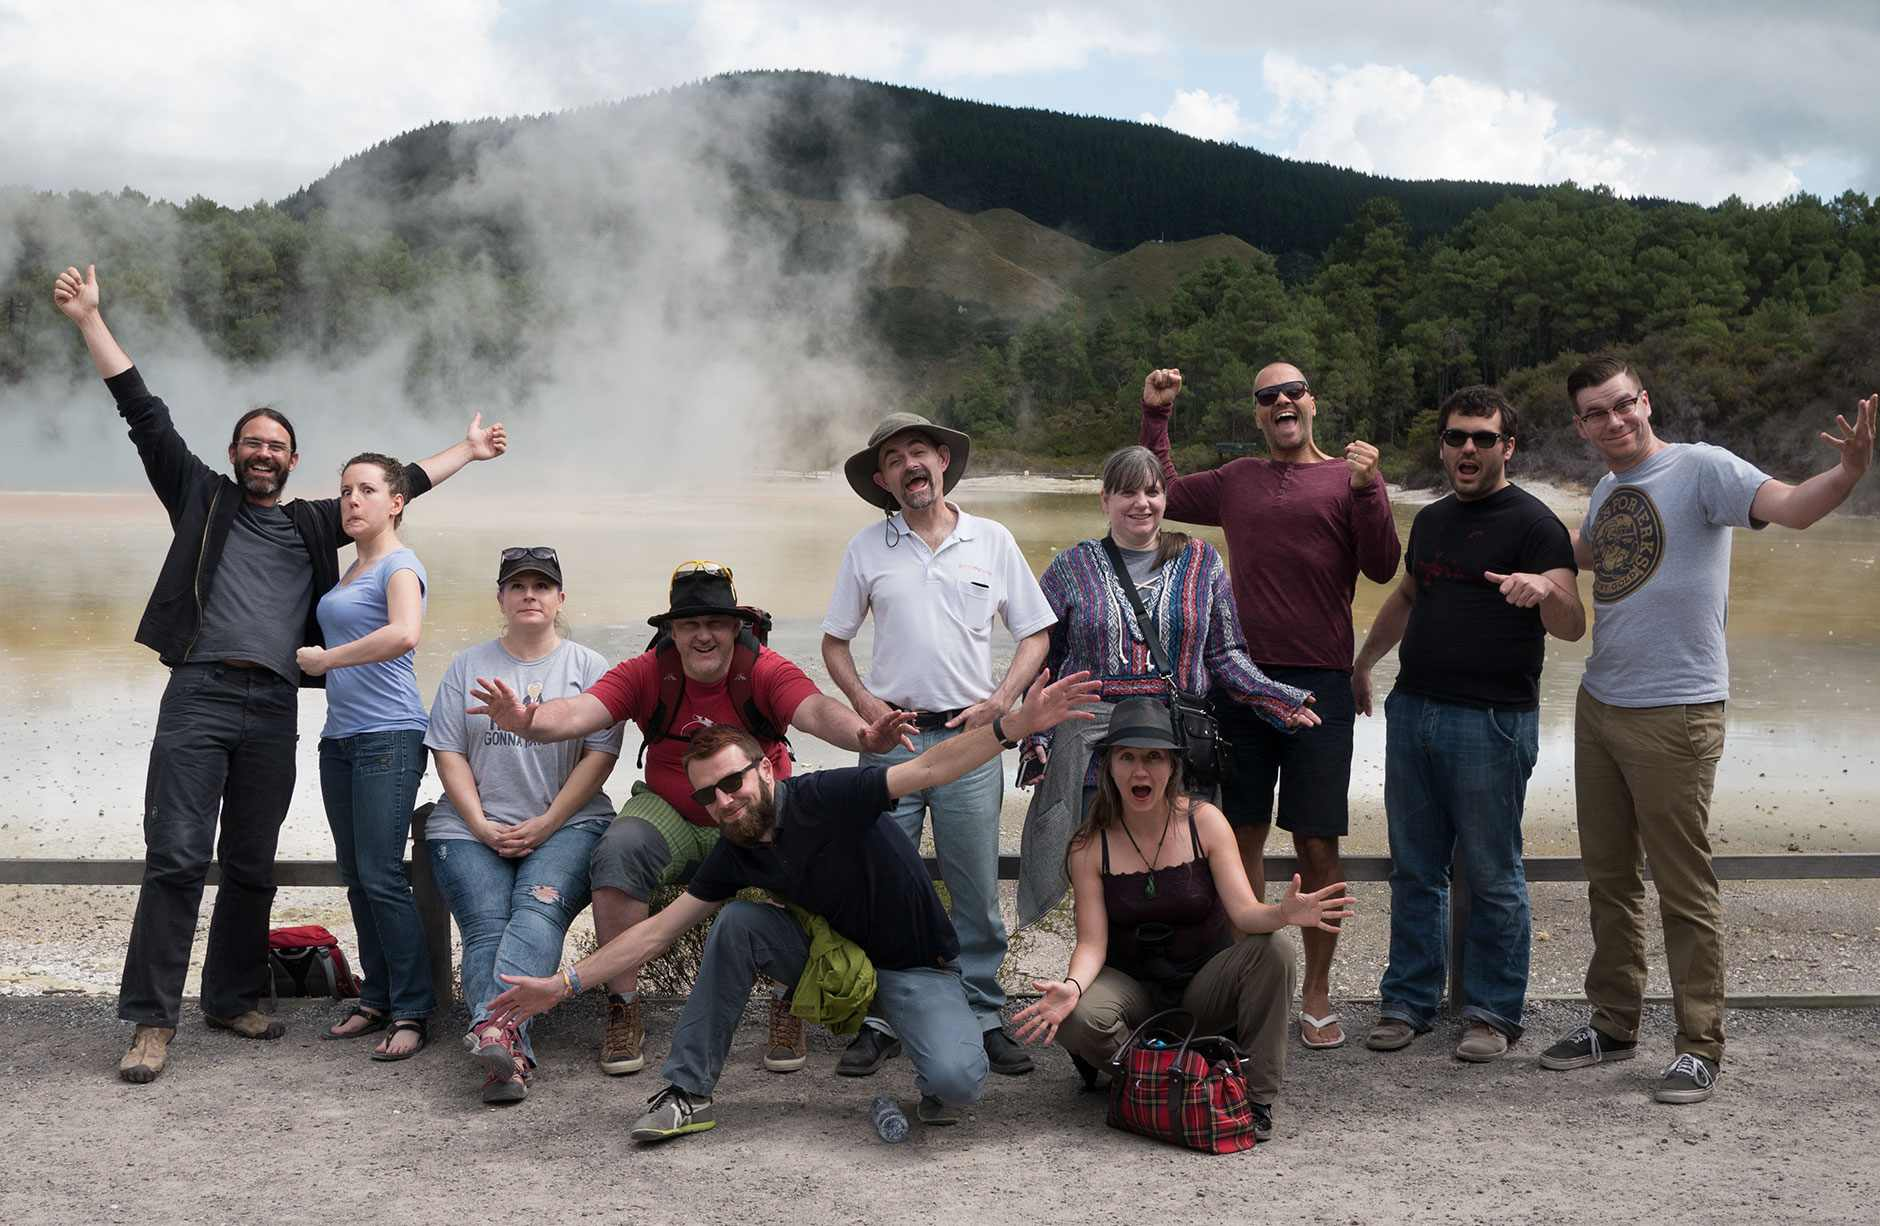 iwantmyname team in Wai-O-Tapu, Taupo (New Zealand)